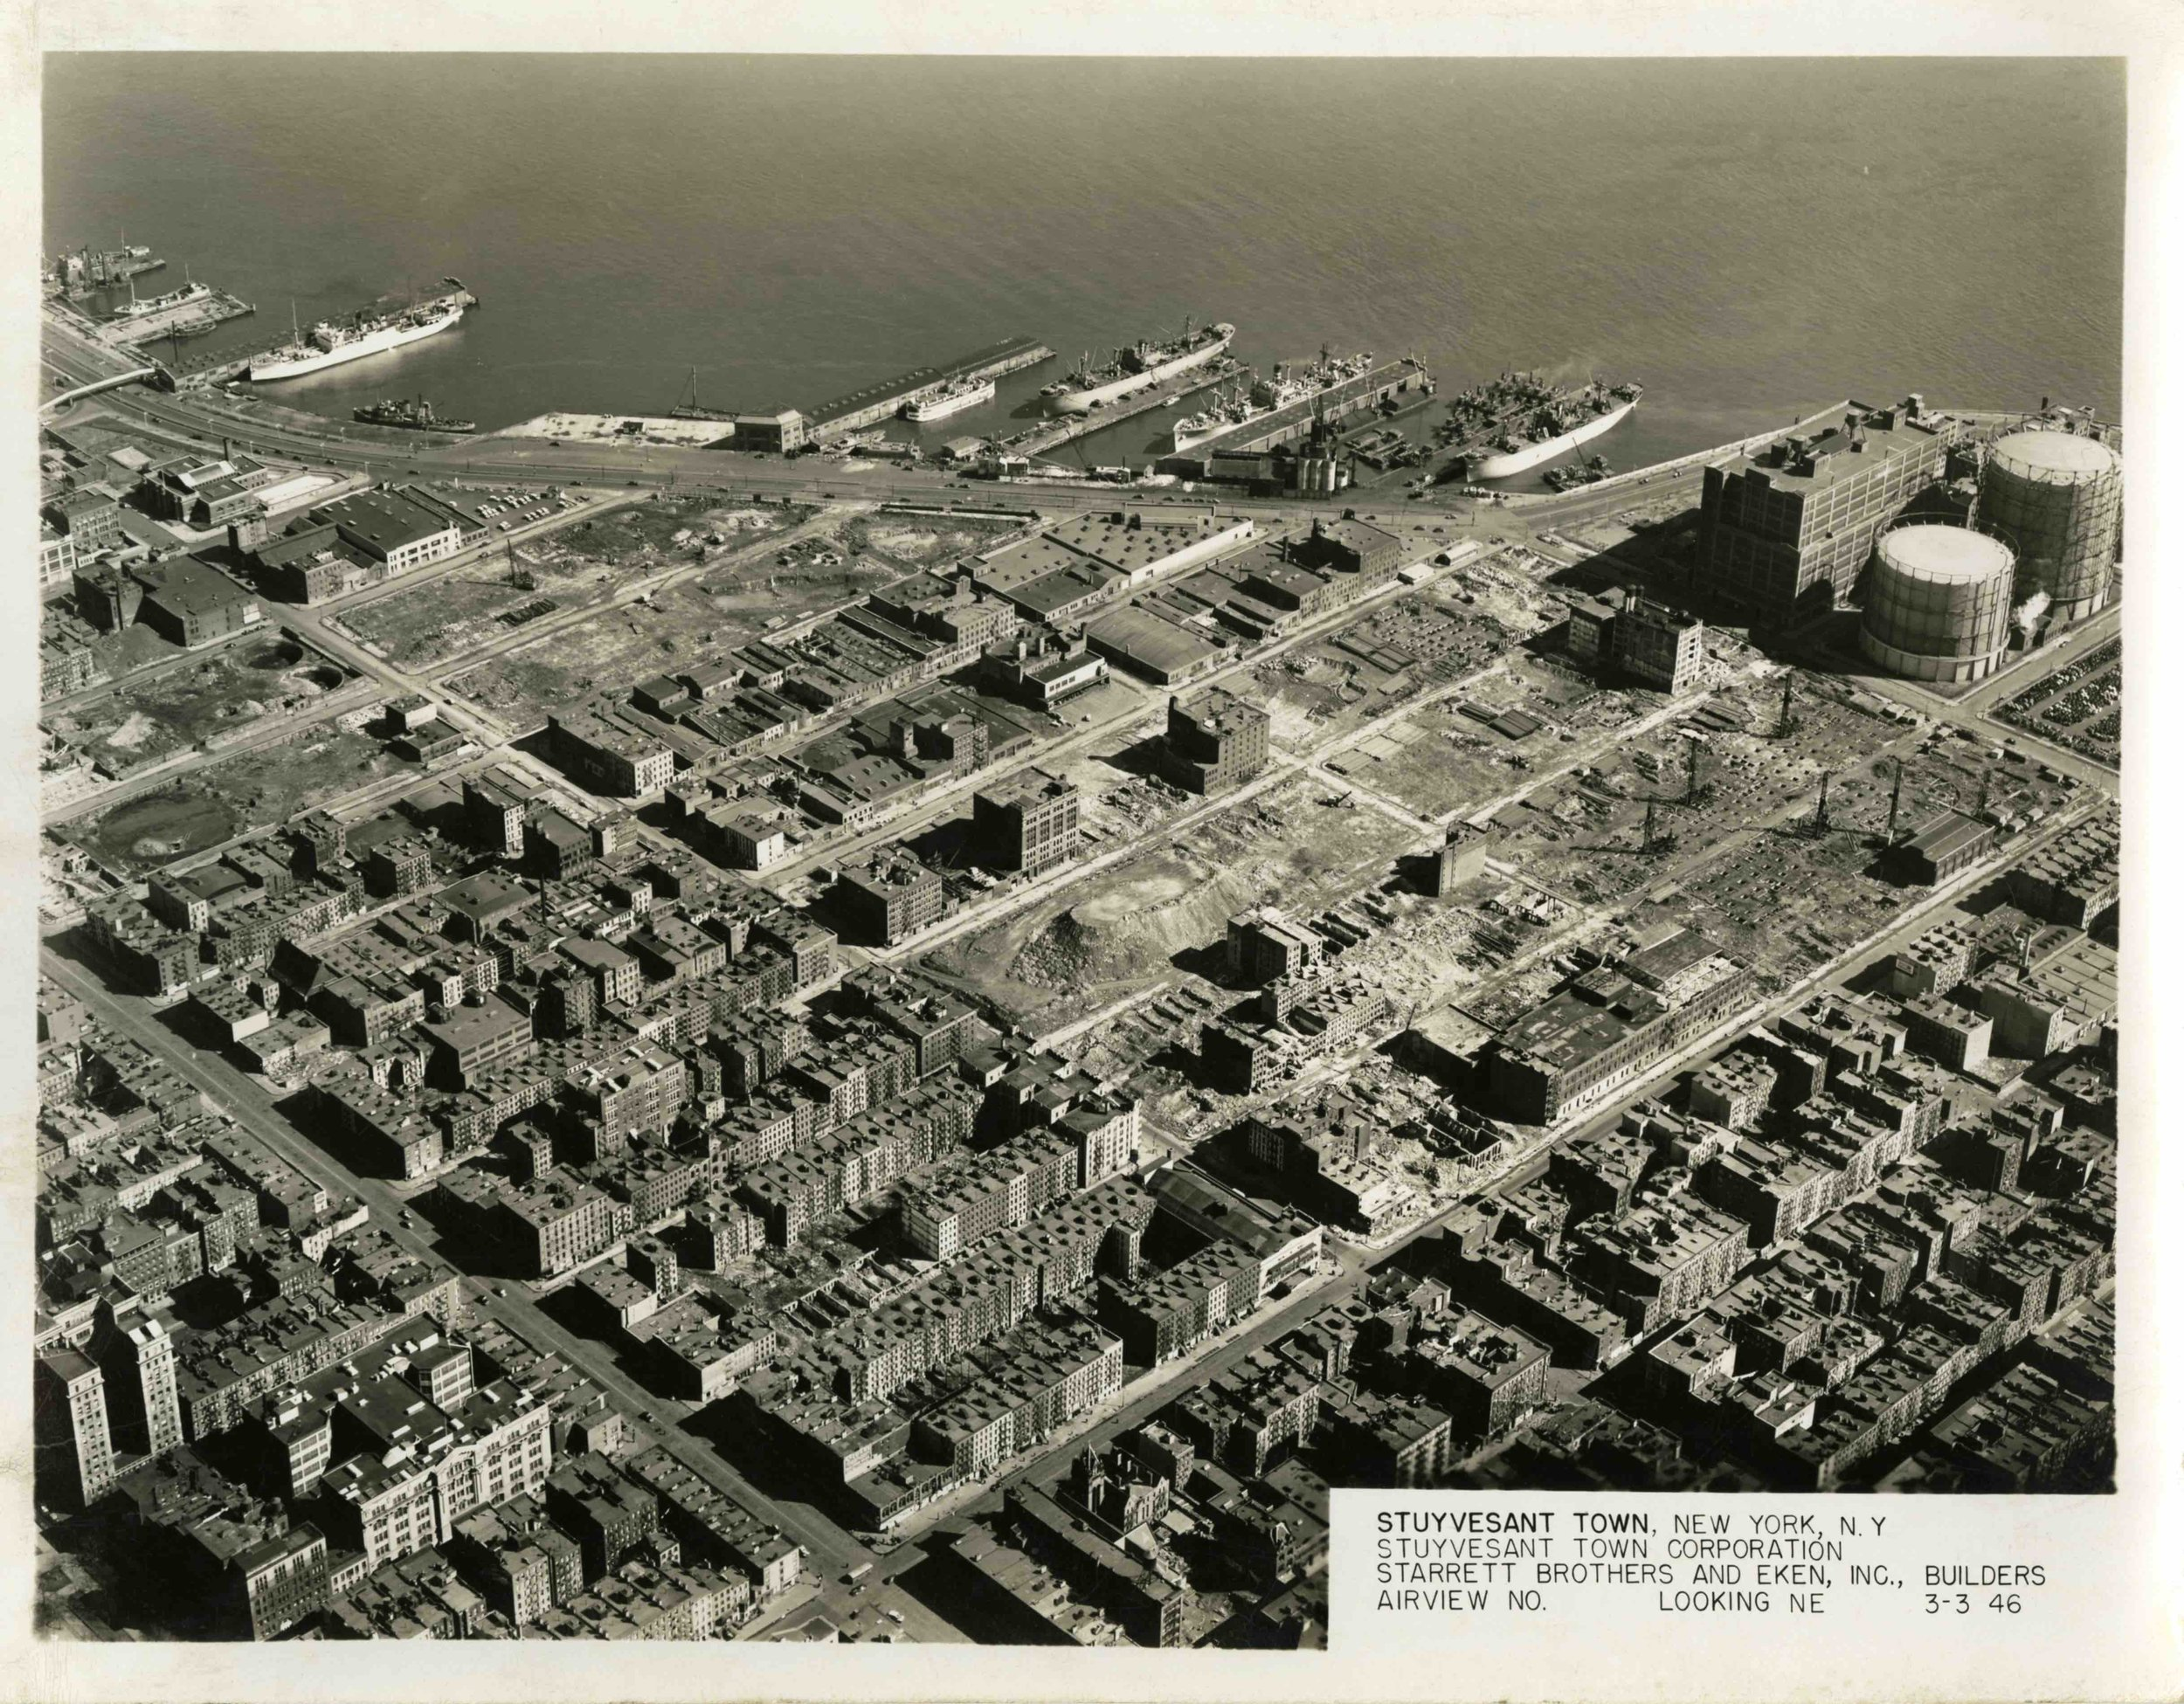 S1-March 3 1946, Stuyvesant Town, Aerial View, Looking North East.jpeg